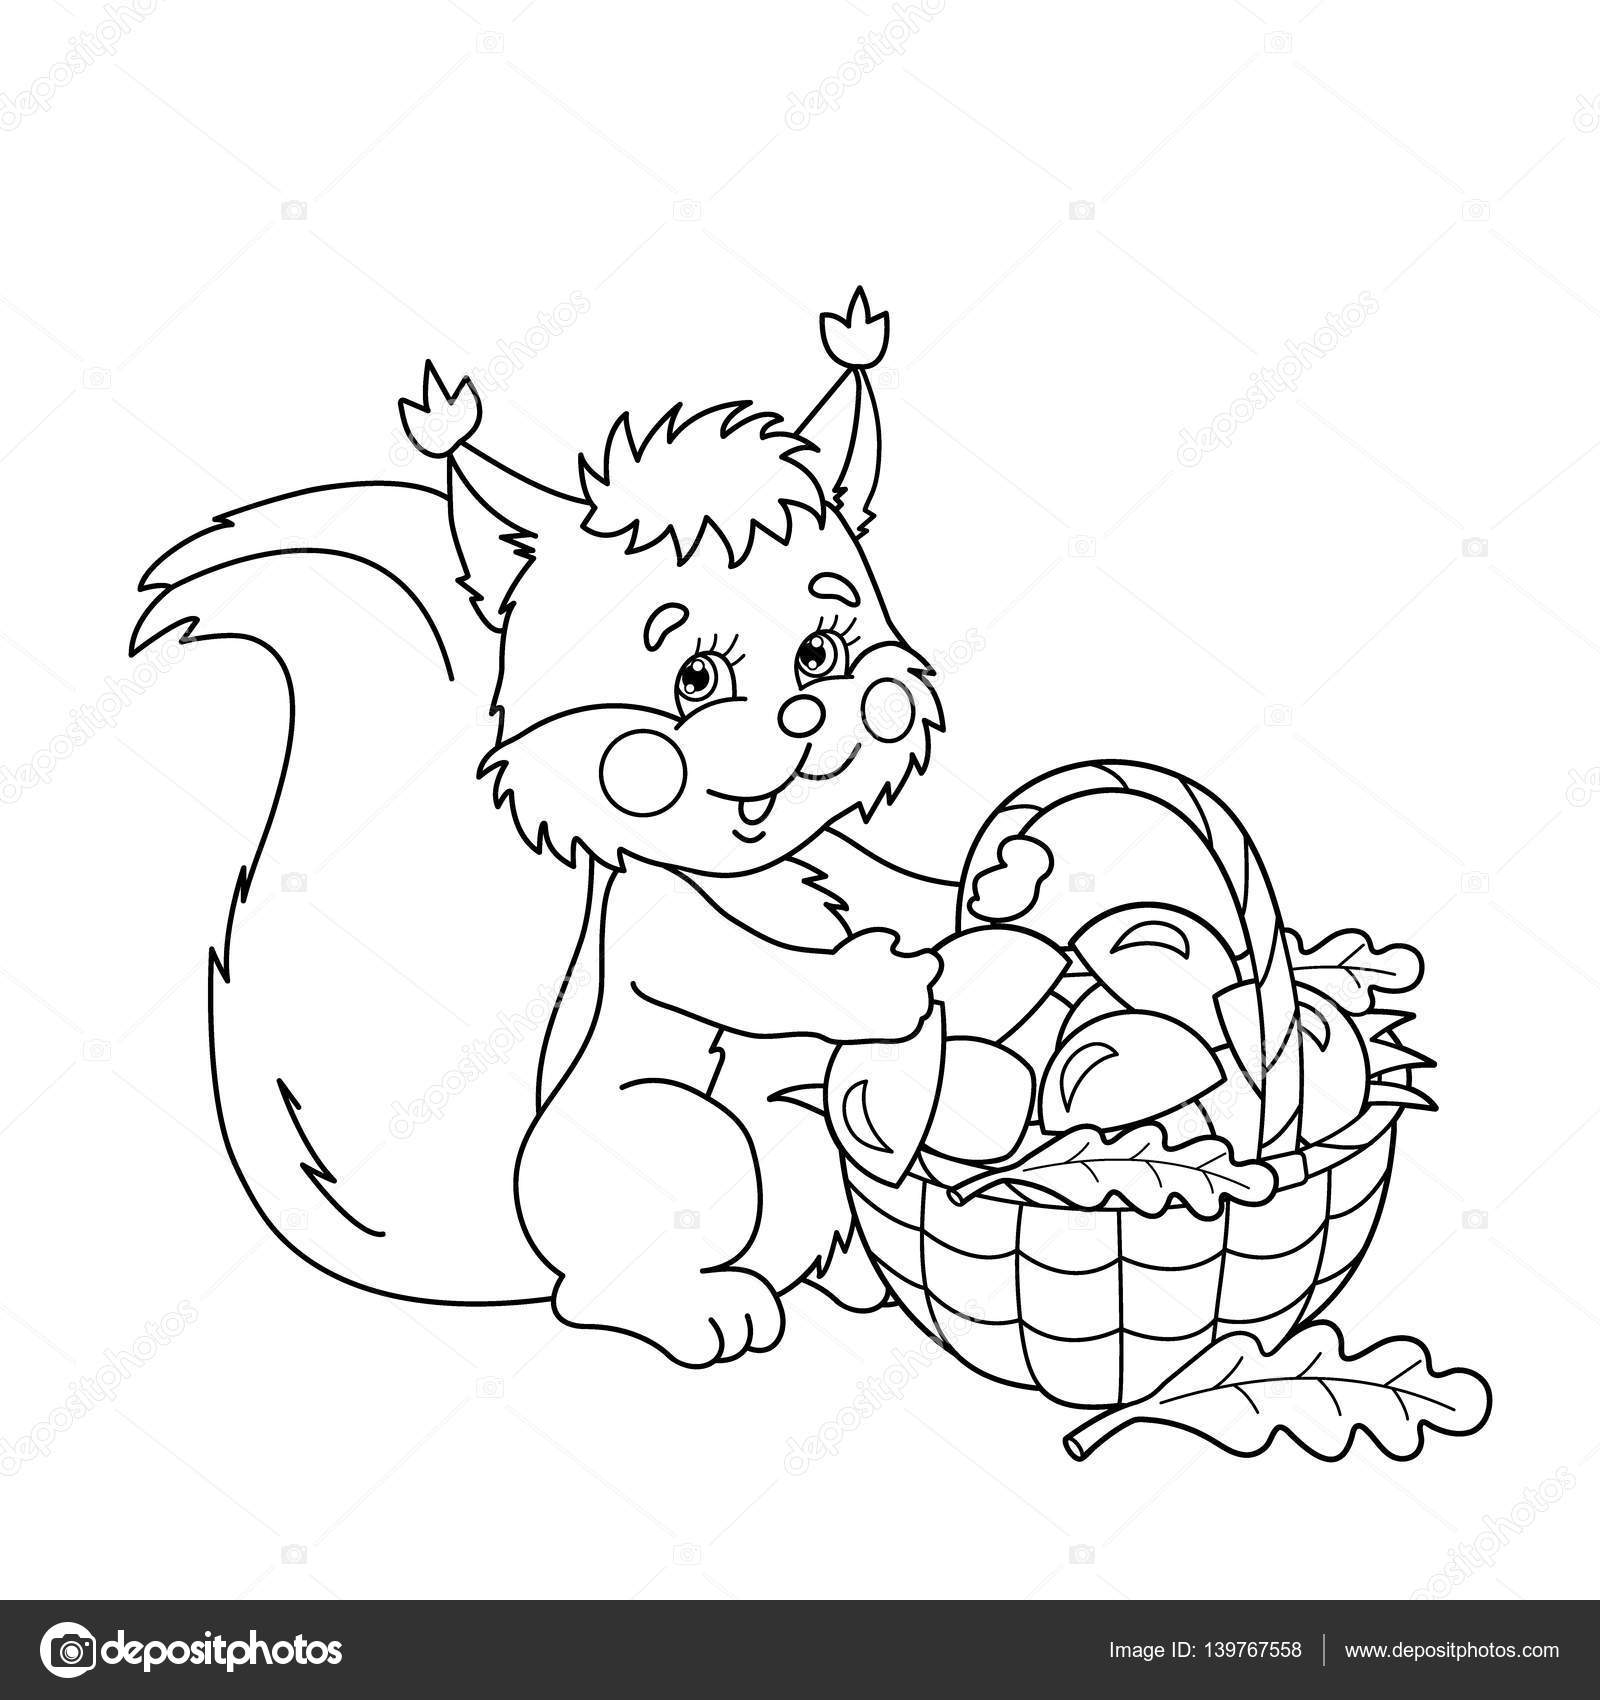 Coloring Page Outline Of Cartoon Squirrel With Basket Of